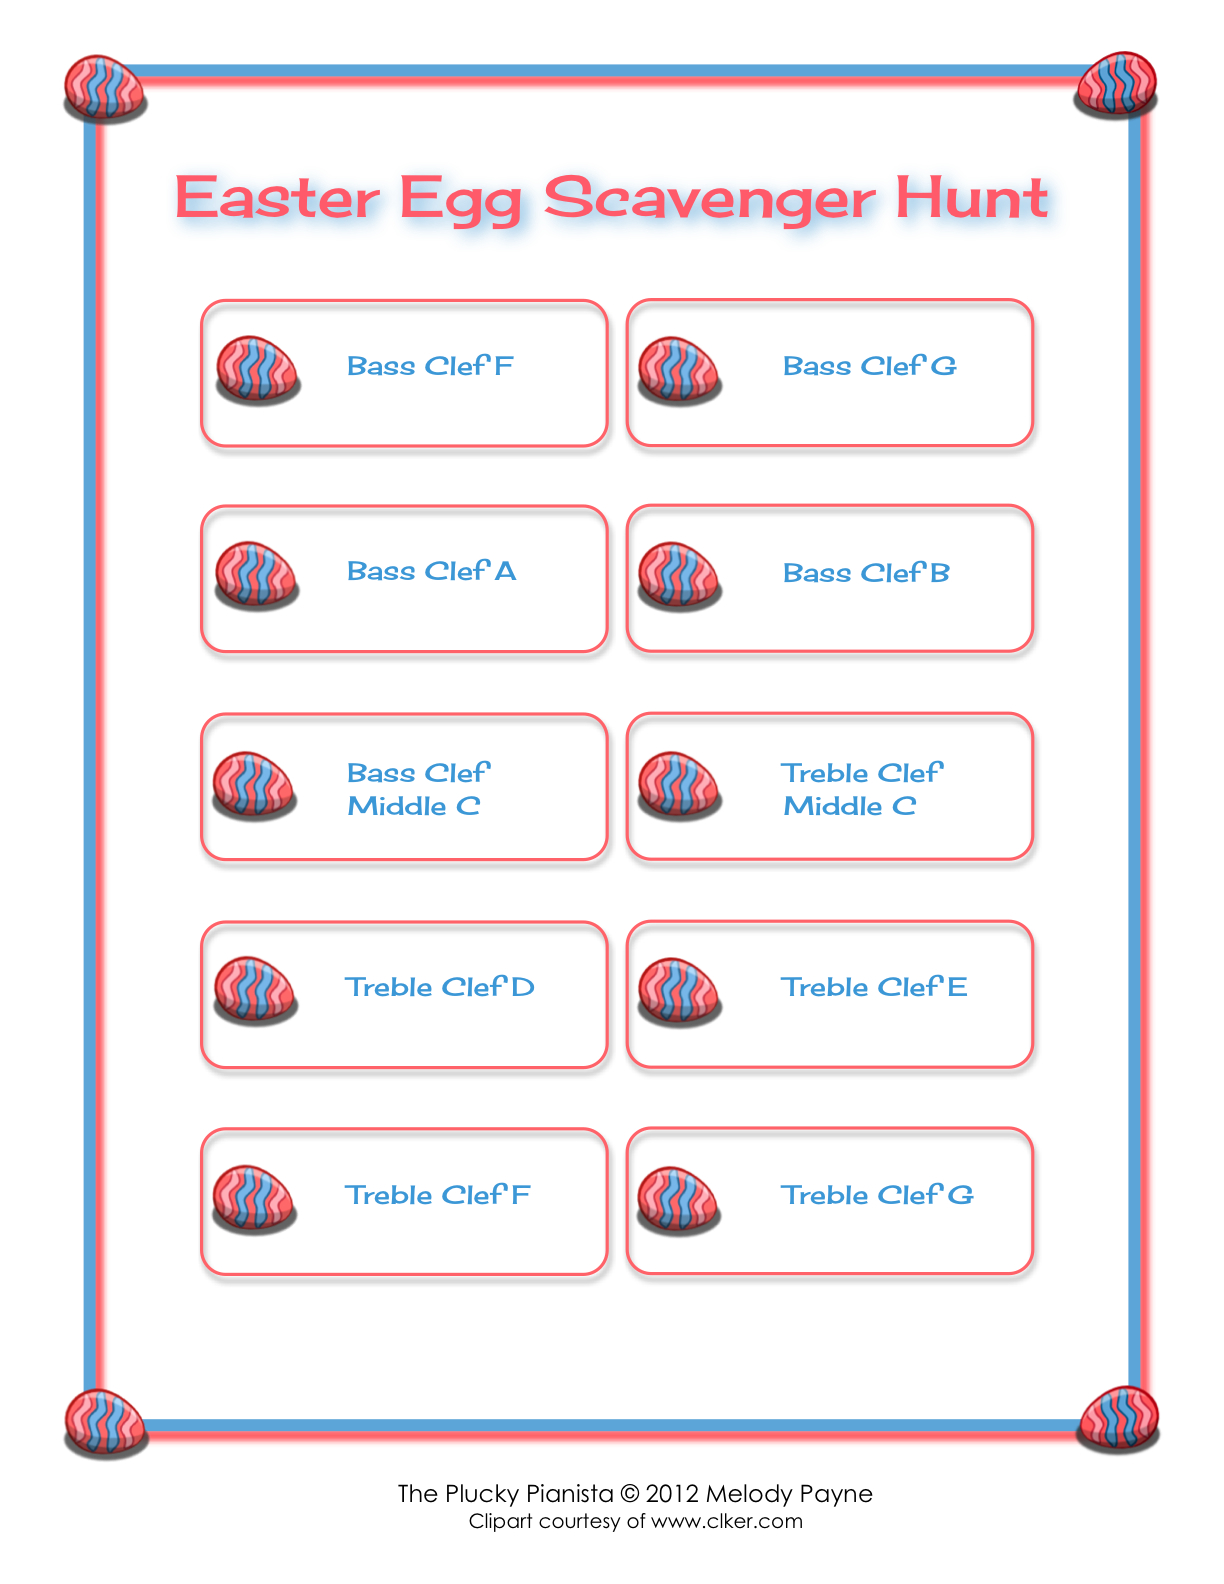 Easter Egg Scavenger Hunt